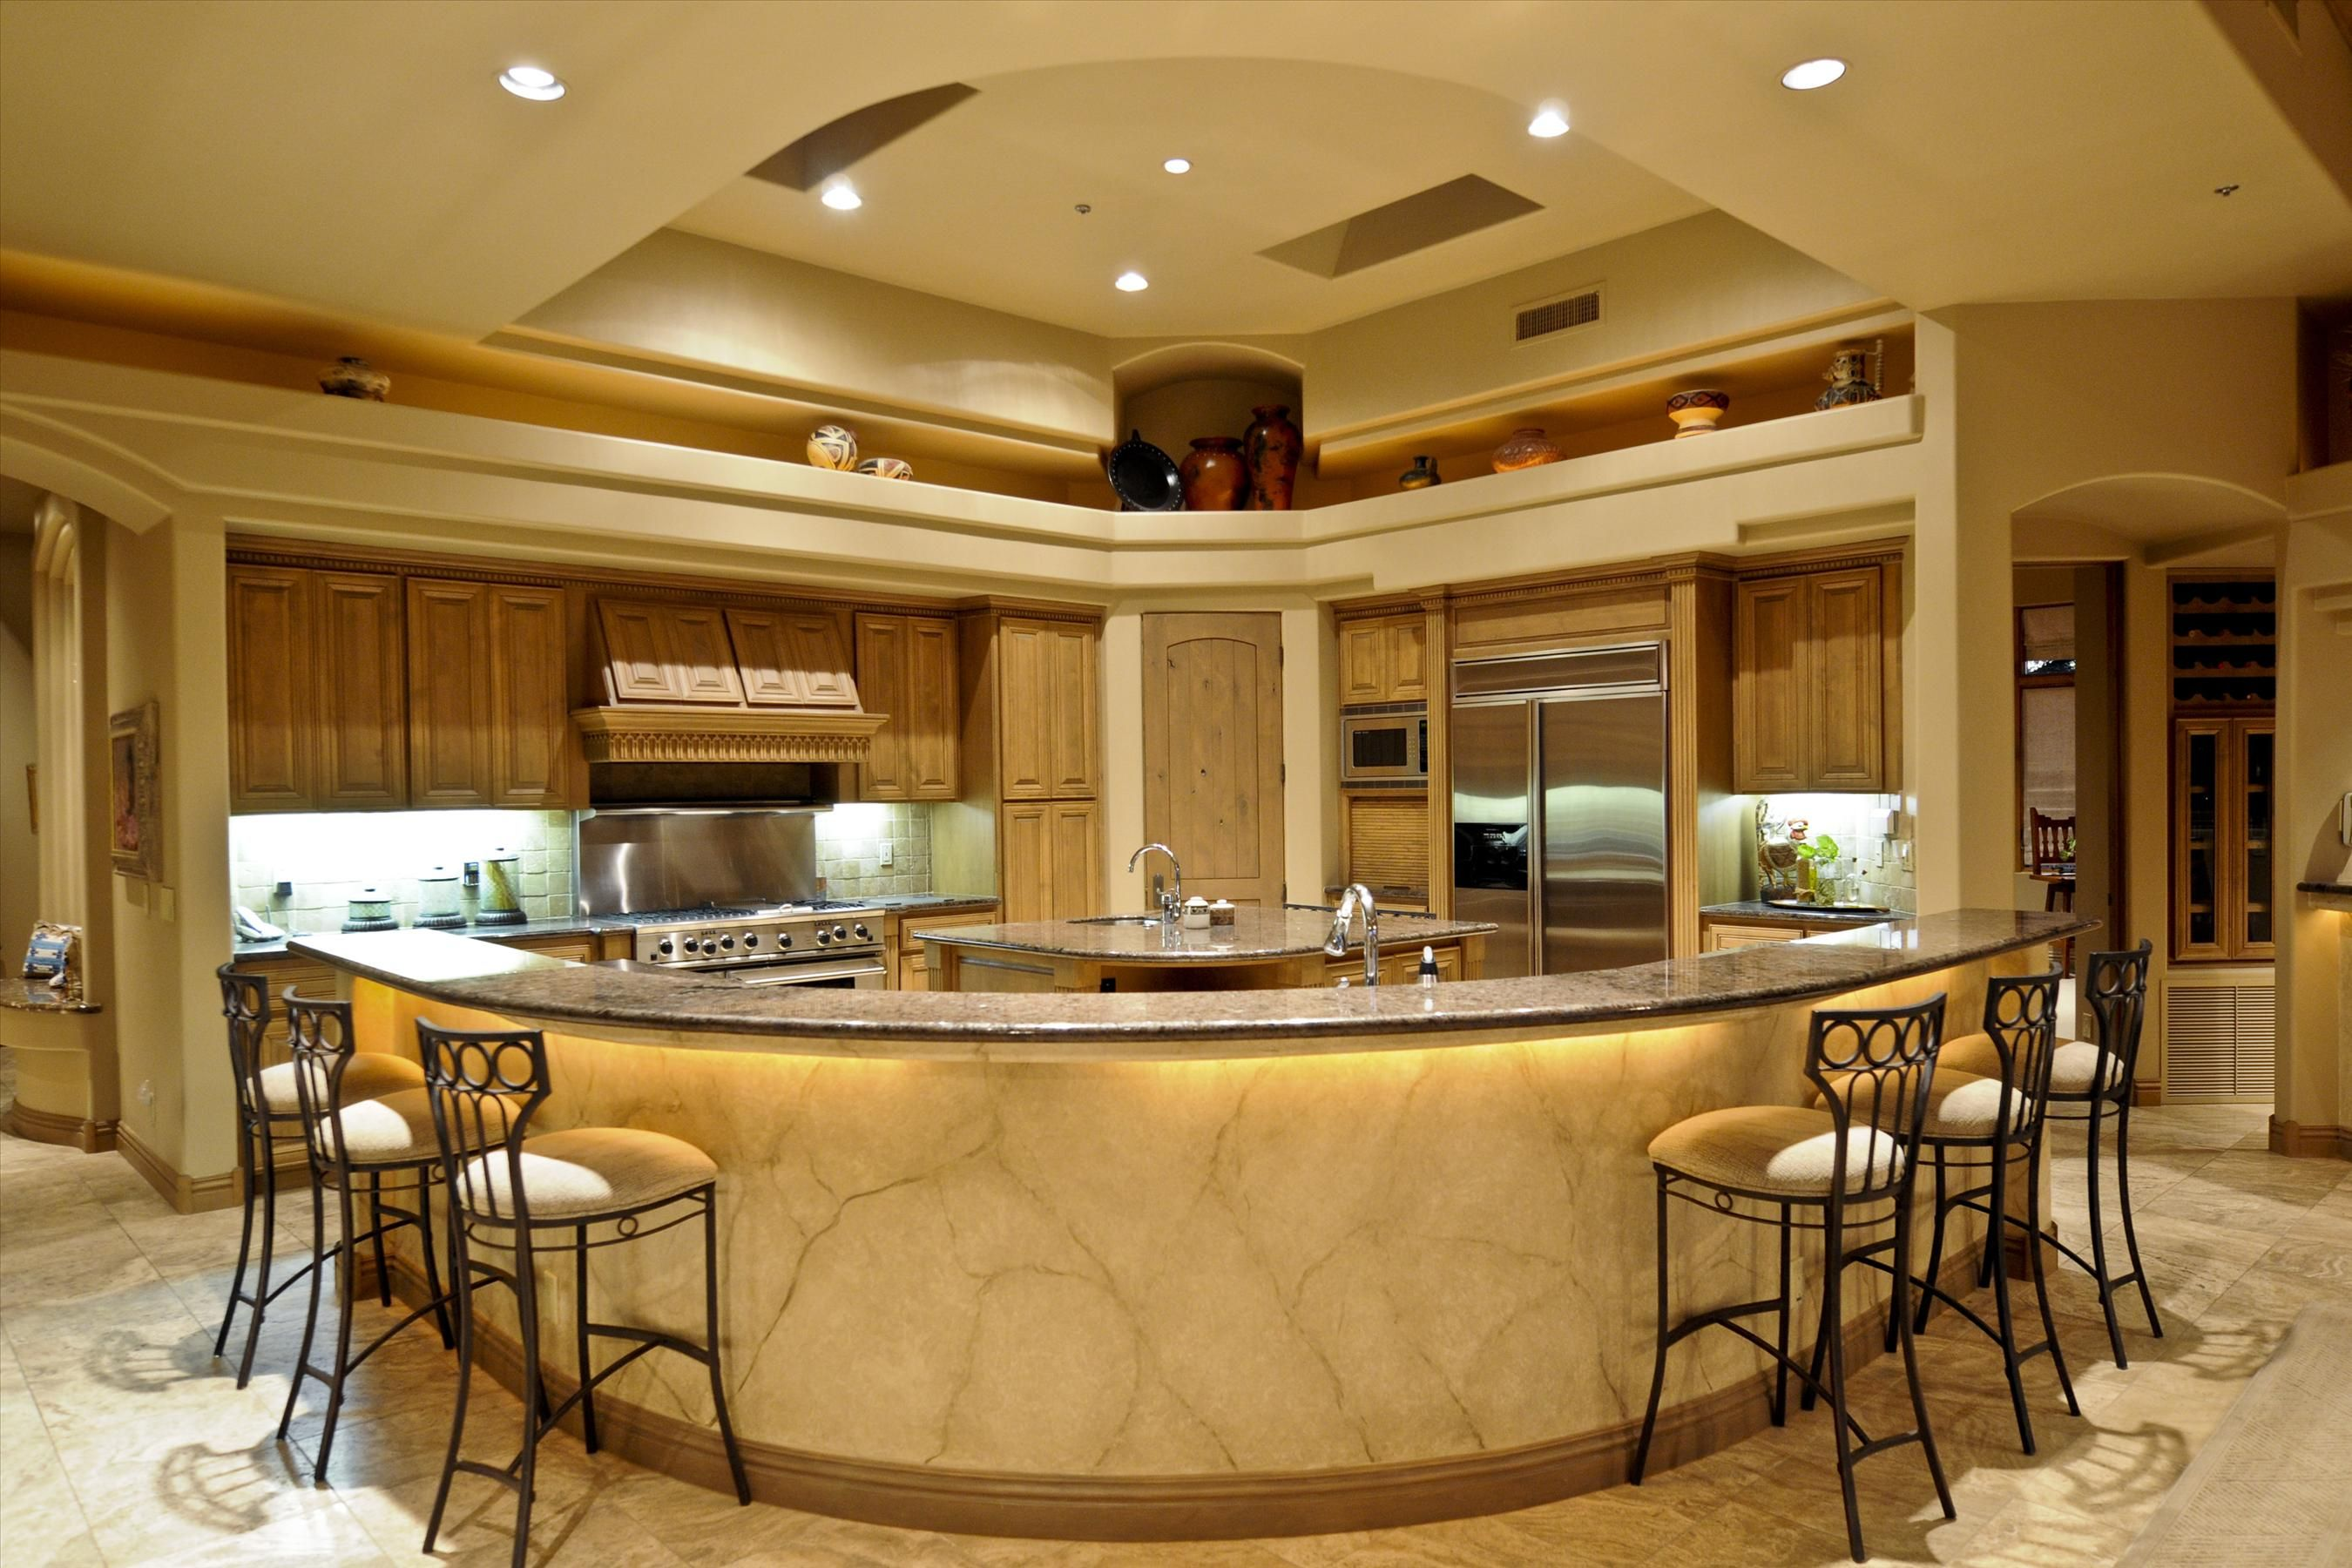 Premier luxury kitchens custom designed and Www house kitchen design